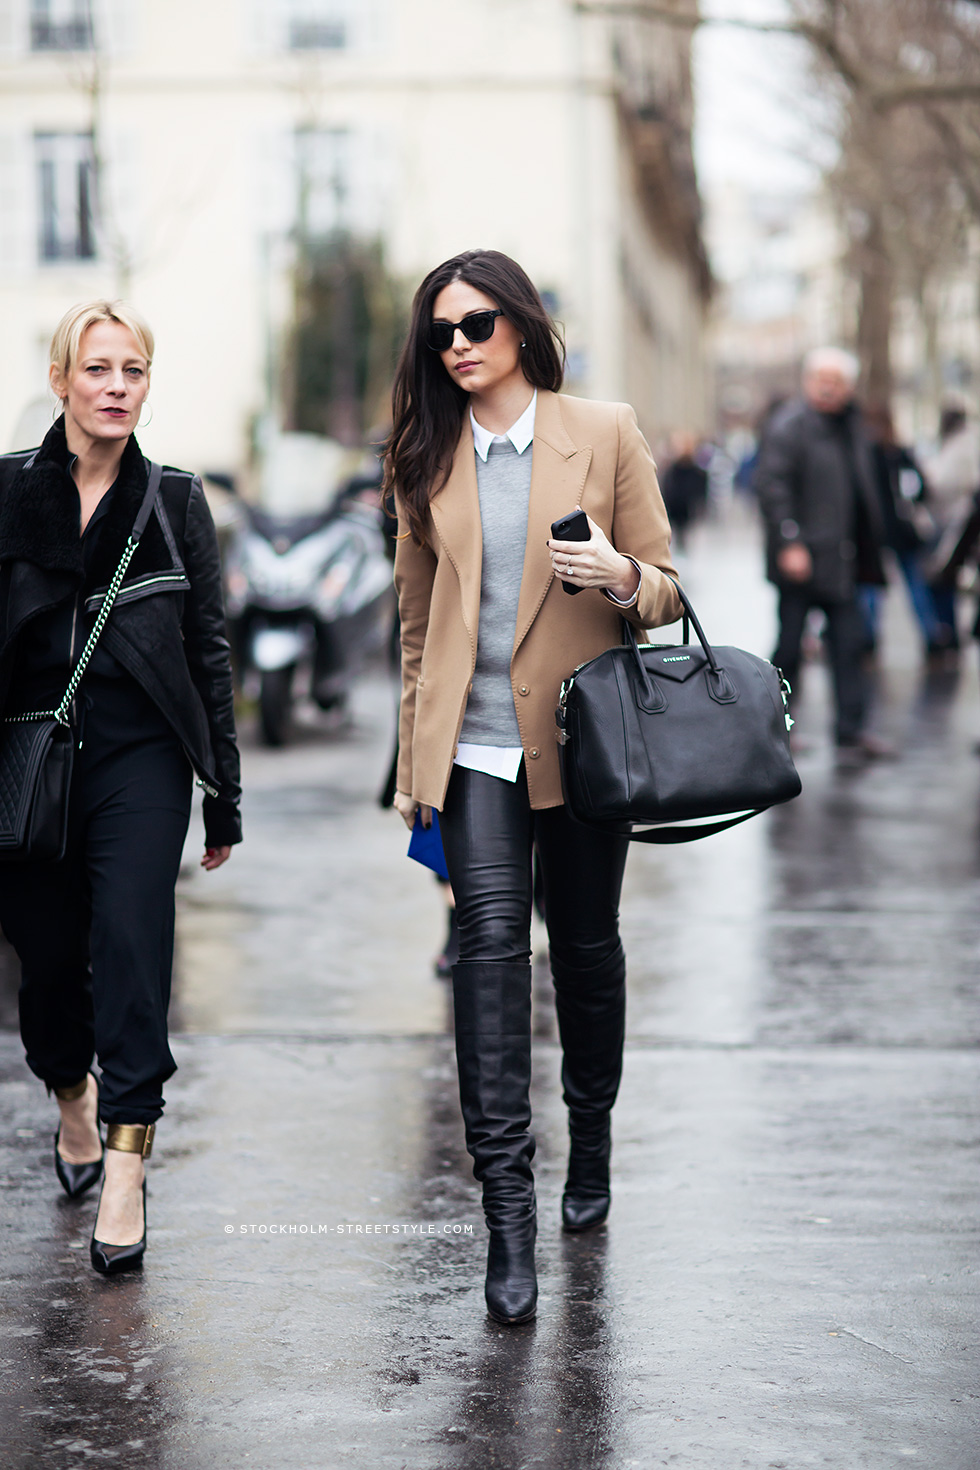 Street-Style-In-The-Moment-Carolines-Mode-Stockholm-Street-Style.jpg